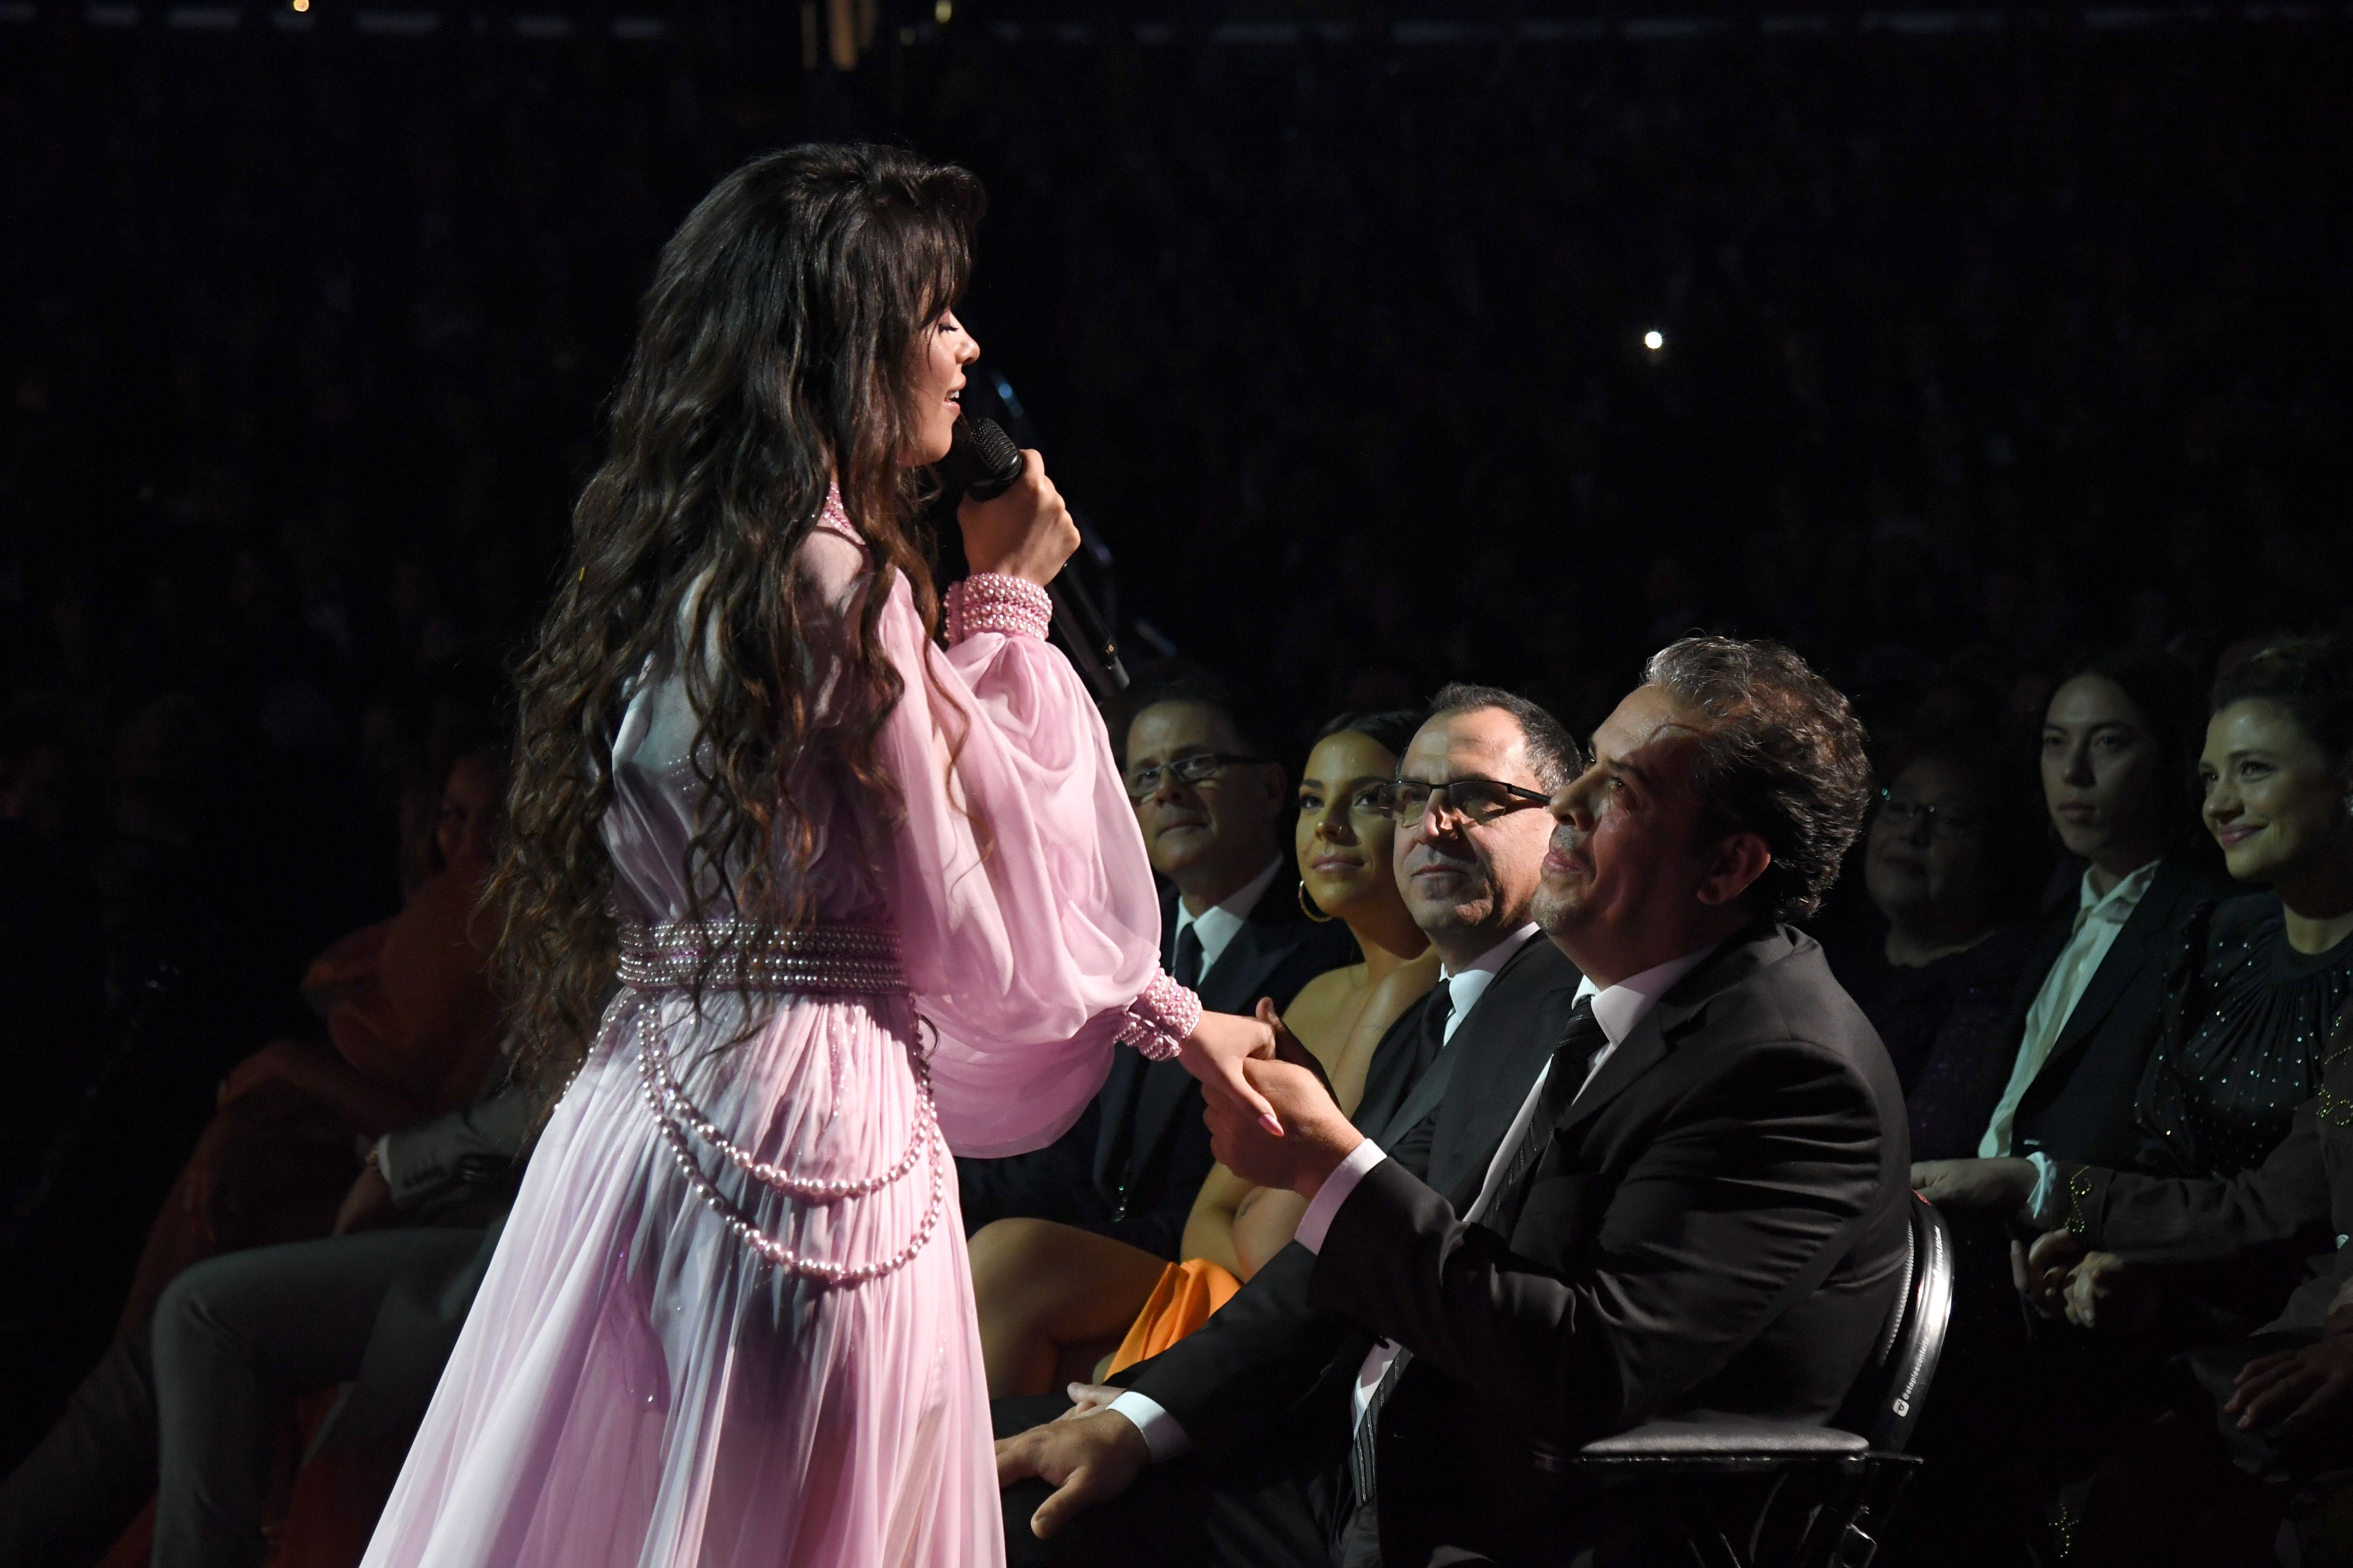 Camila Cabello singing to her father.